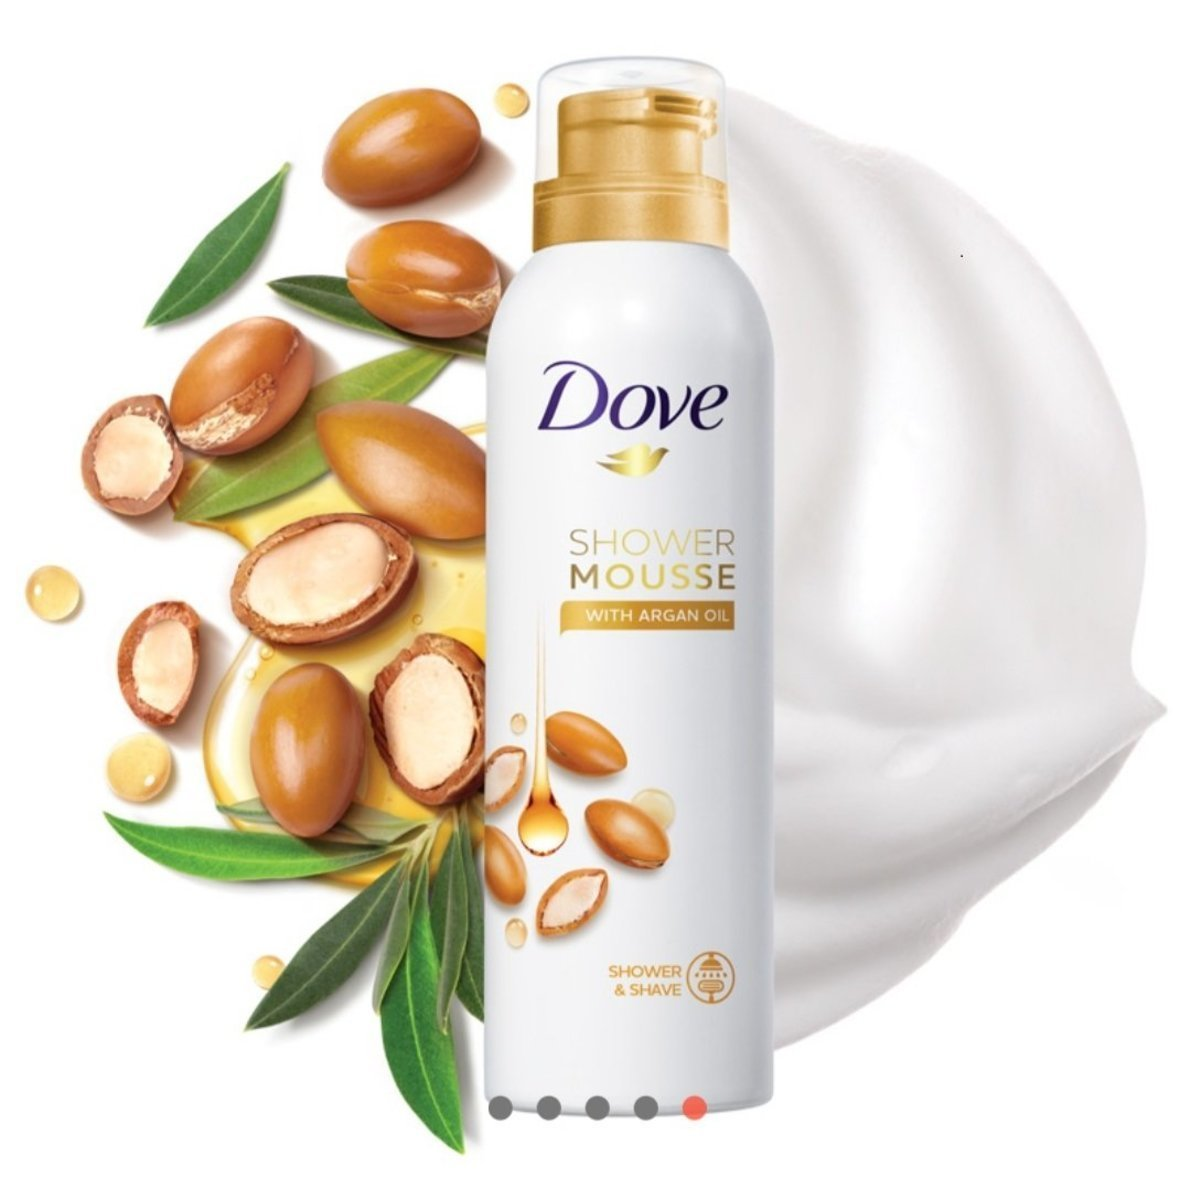 Dove - Shower Mousse with Argan Oil 200ml (Parallel imported products)